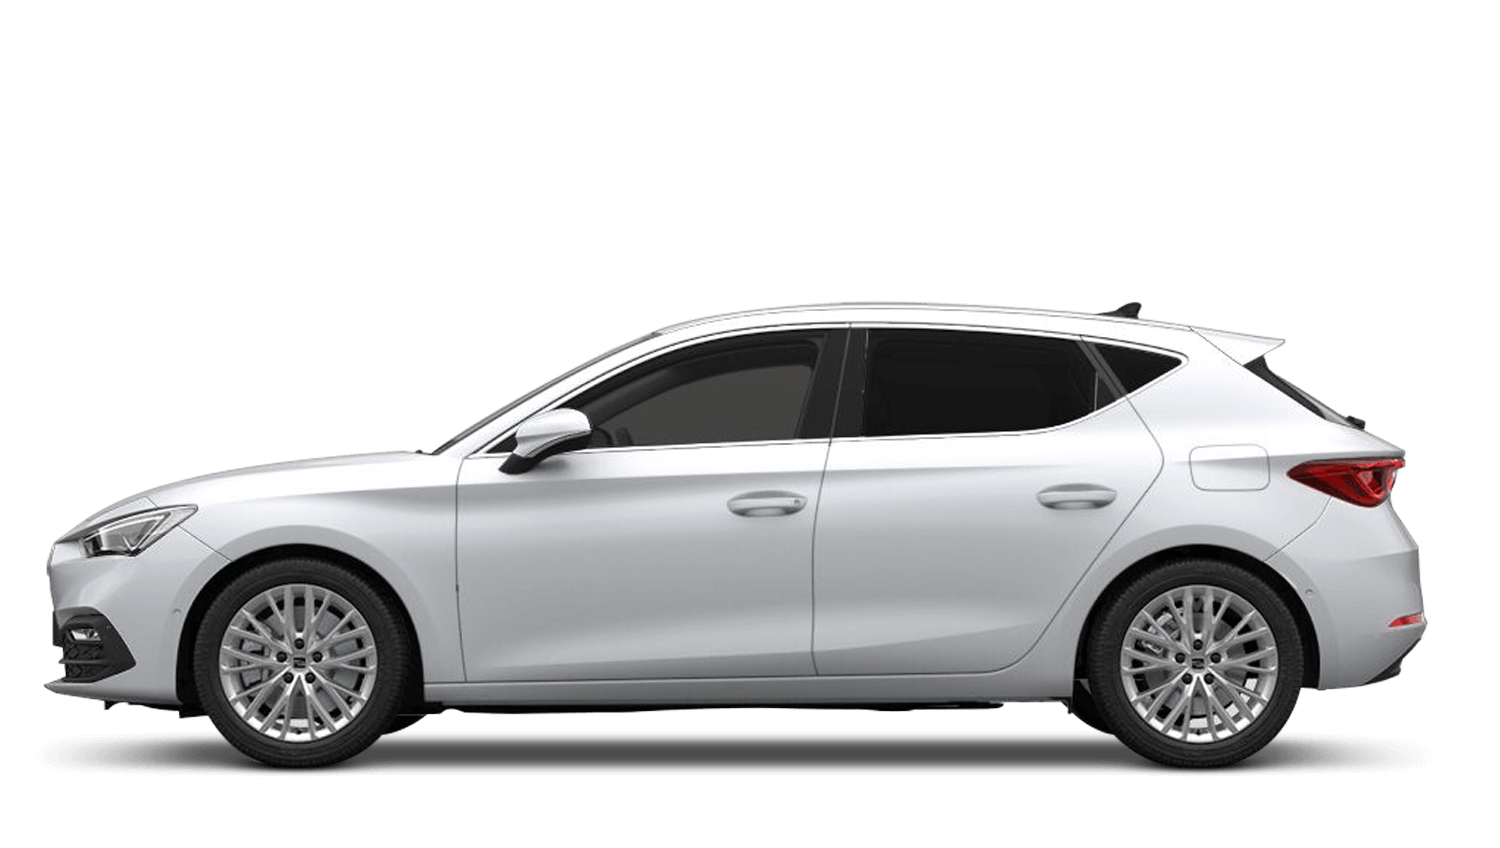 Nevada White (Metallic) SEAT Leon